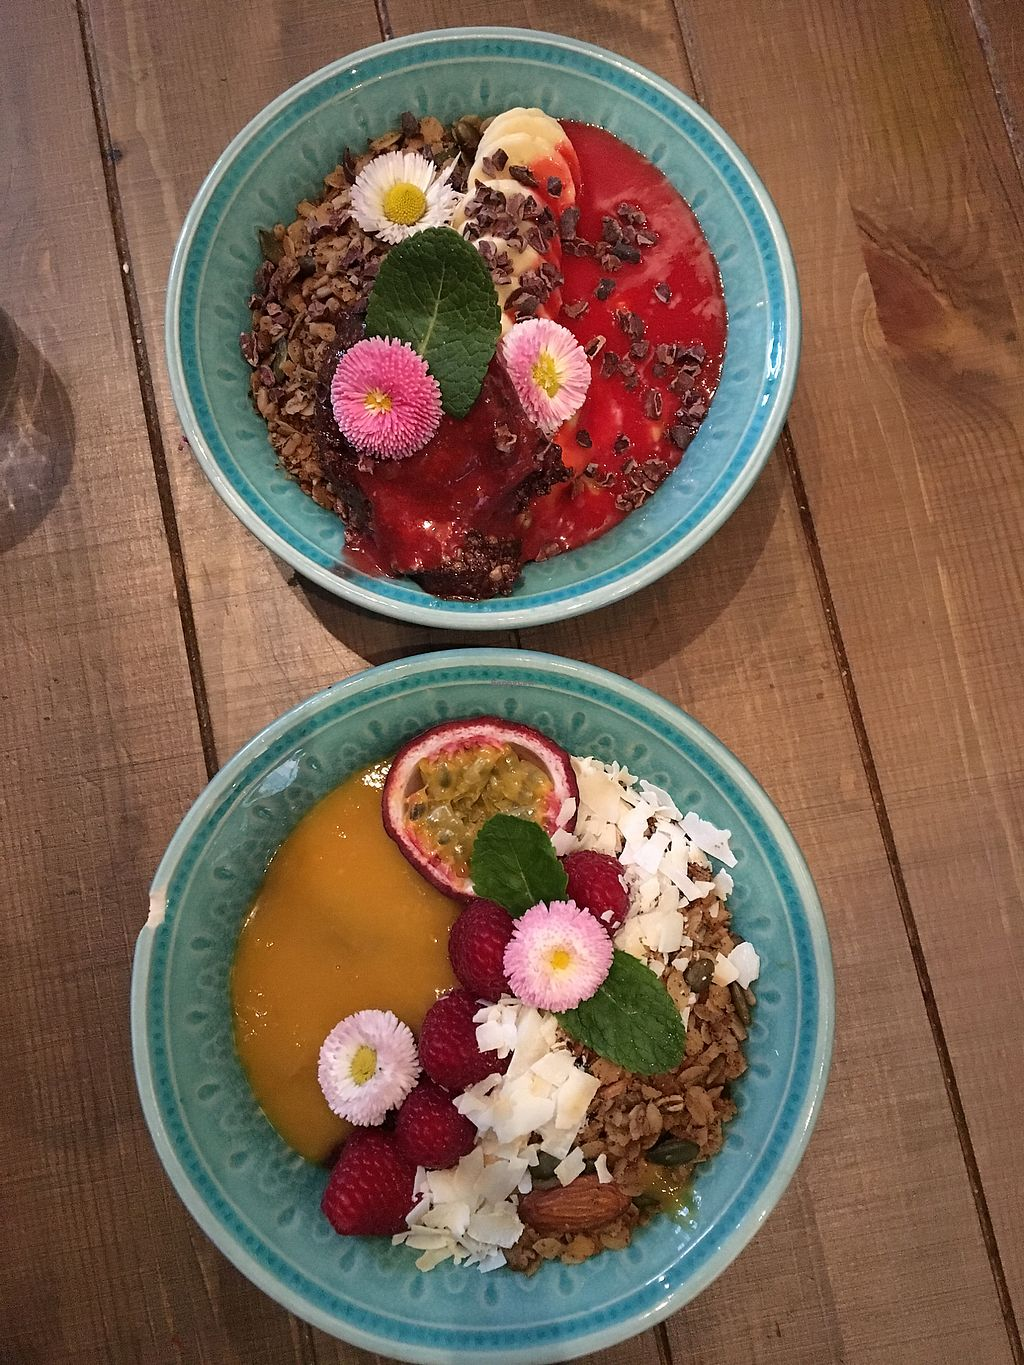 """Photo of Mahalo  by <a href=""""/members/profile/AnnikaPoij%C3%A4rvi"""">AnnikaPoijärvi</a> <br/>Breakfast bowls <br/> February 11, 2018  - <a href='/contact/abuse/image/66713/357806'>Report</a>"""